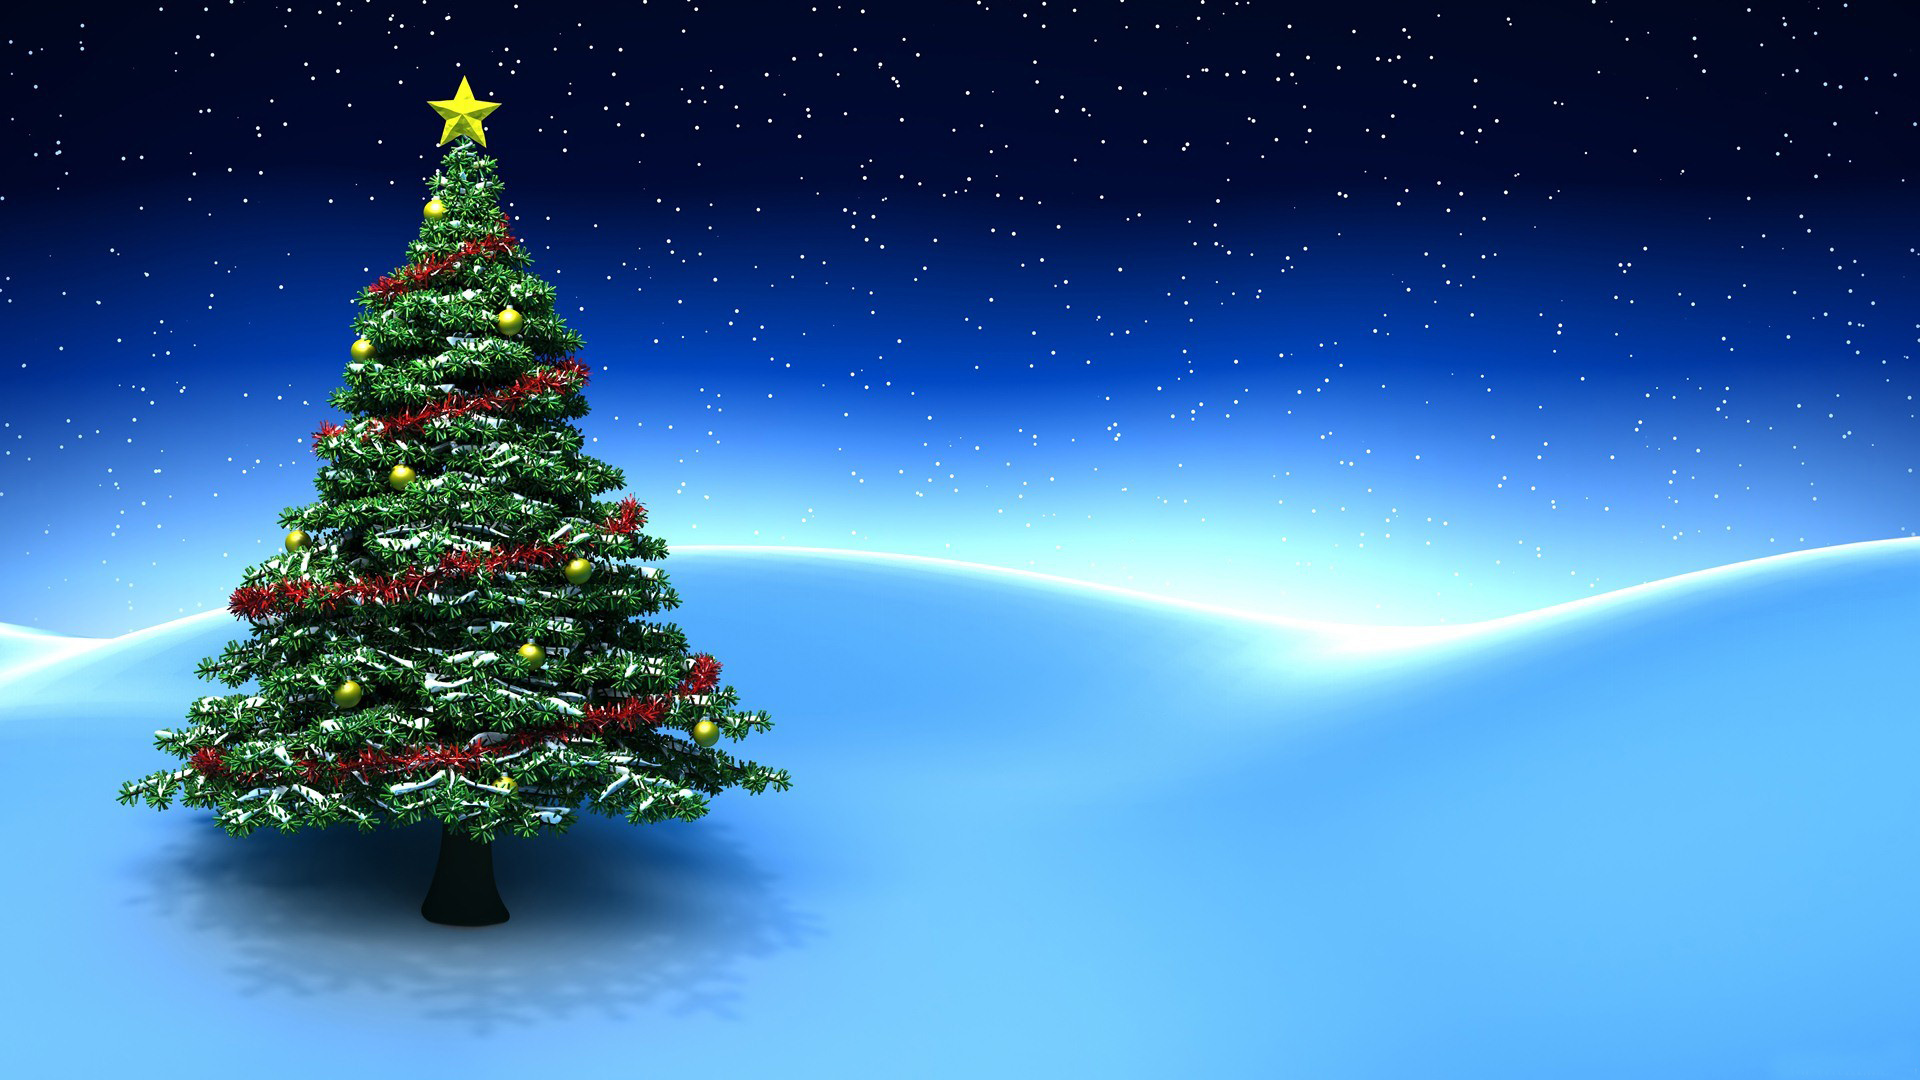 3D Holidays Christmas Wallpapers